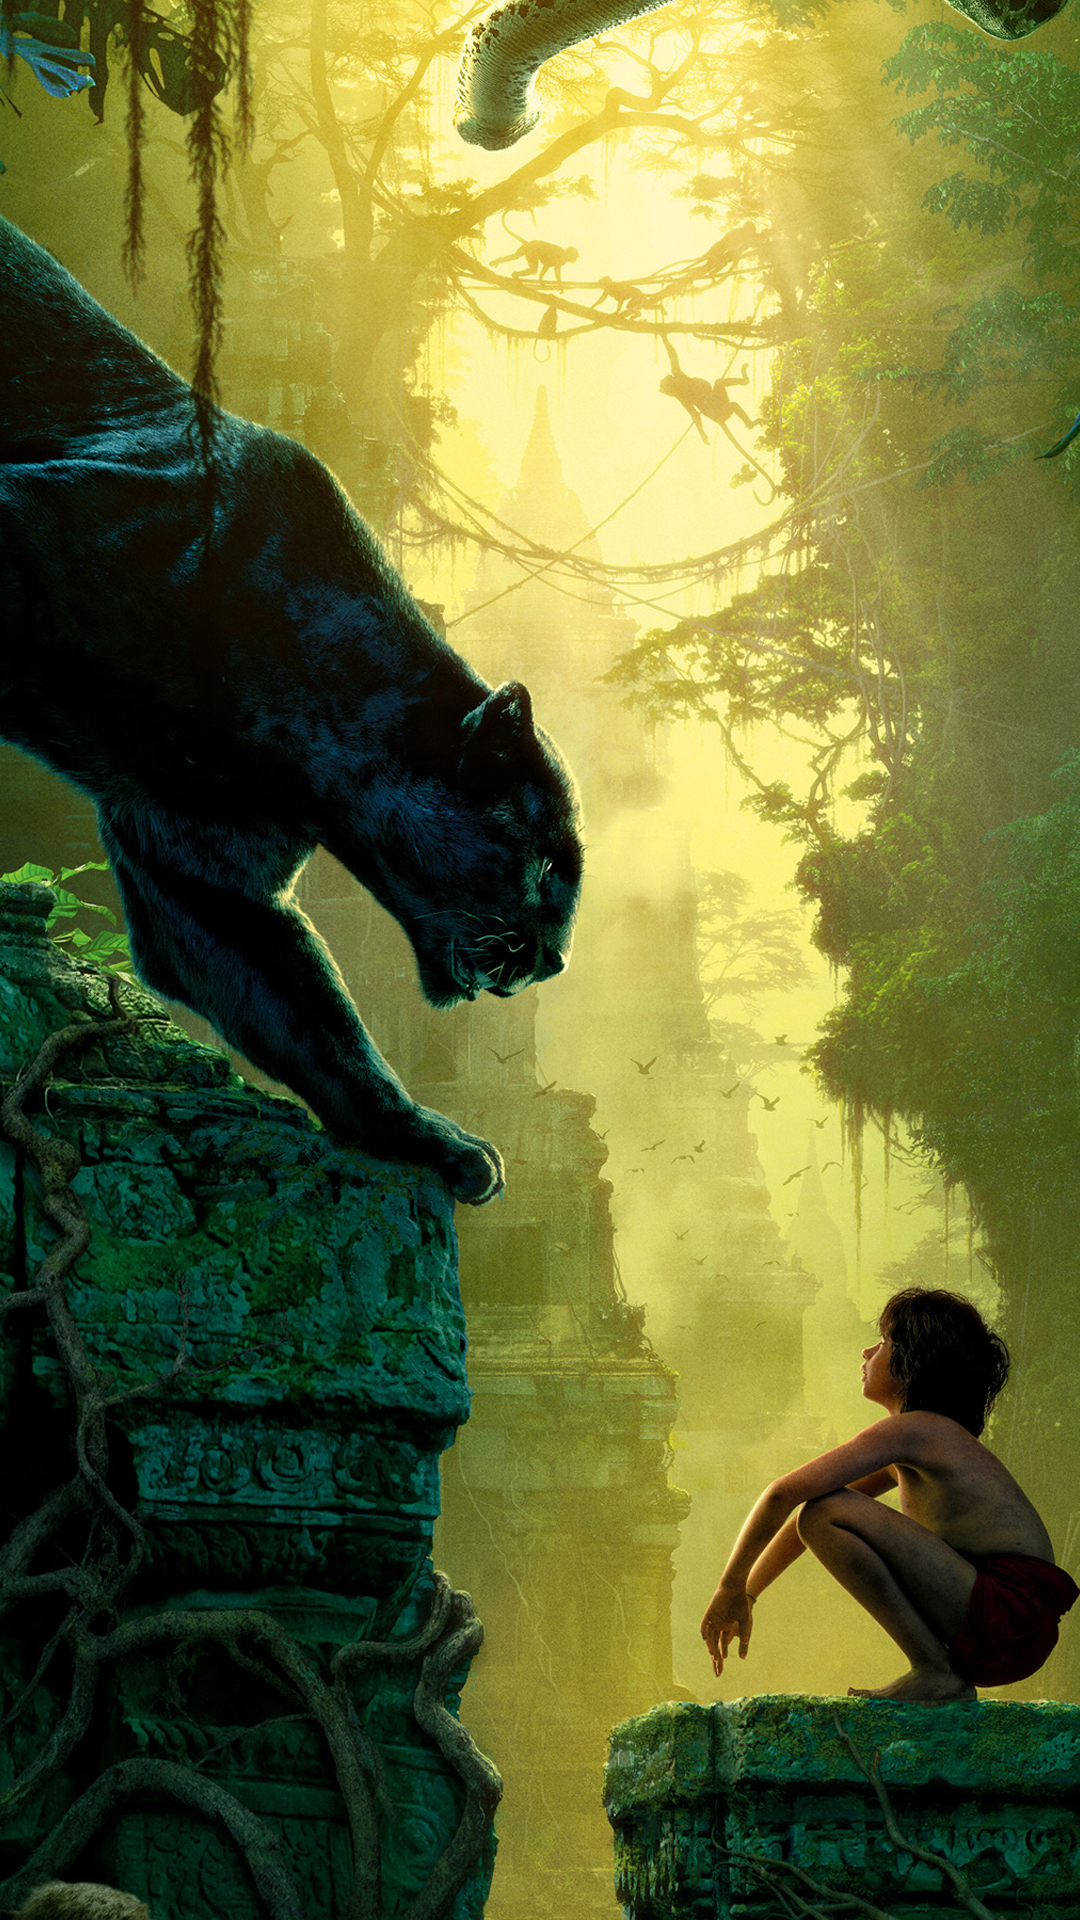 Free Download The Jungle Book 2016 Movie Wallpapers For